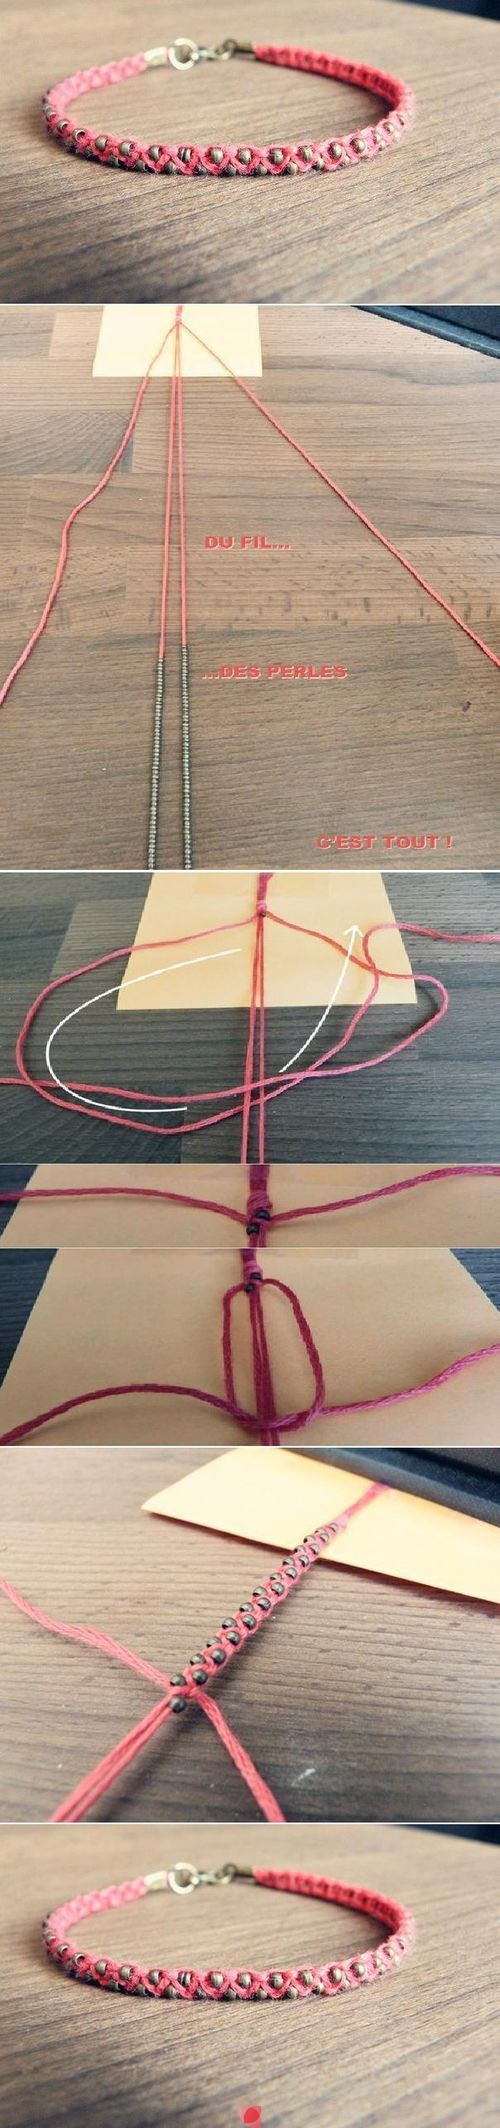 Do you have tiny beads and string around the house? This will be a perfect project for you then!